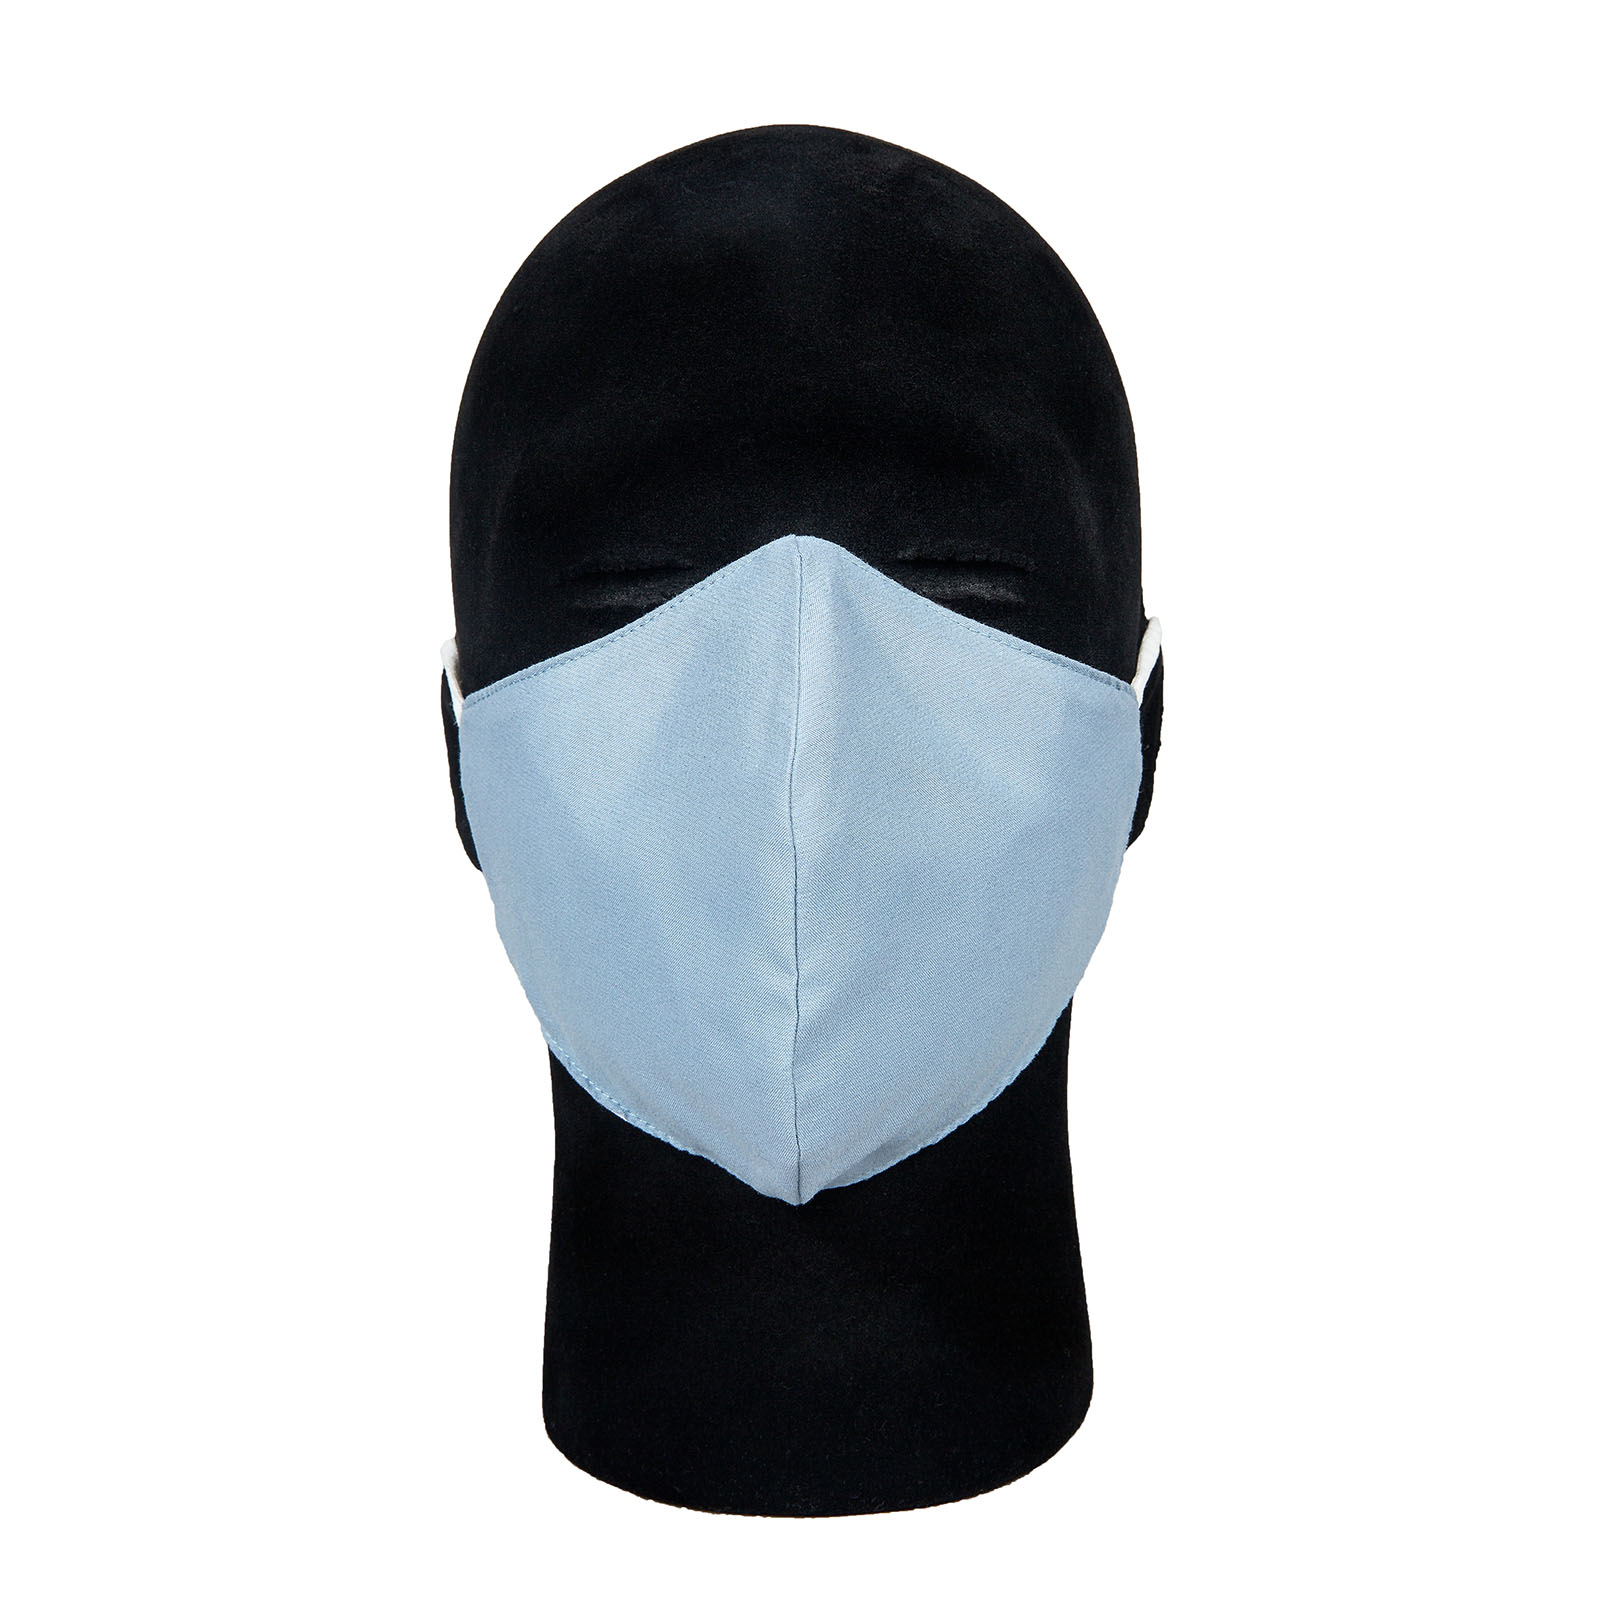 ValuBran Reusable Protective Face Mask Covers